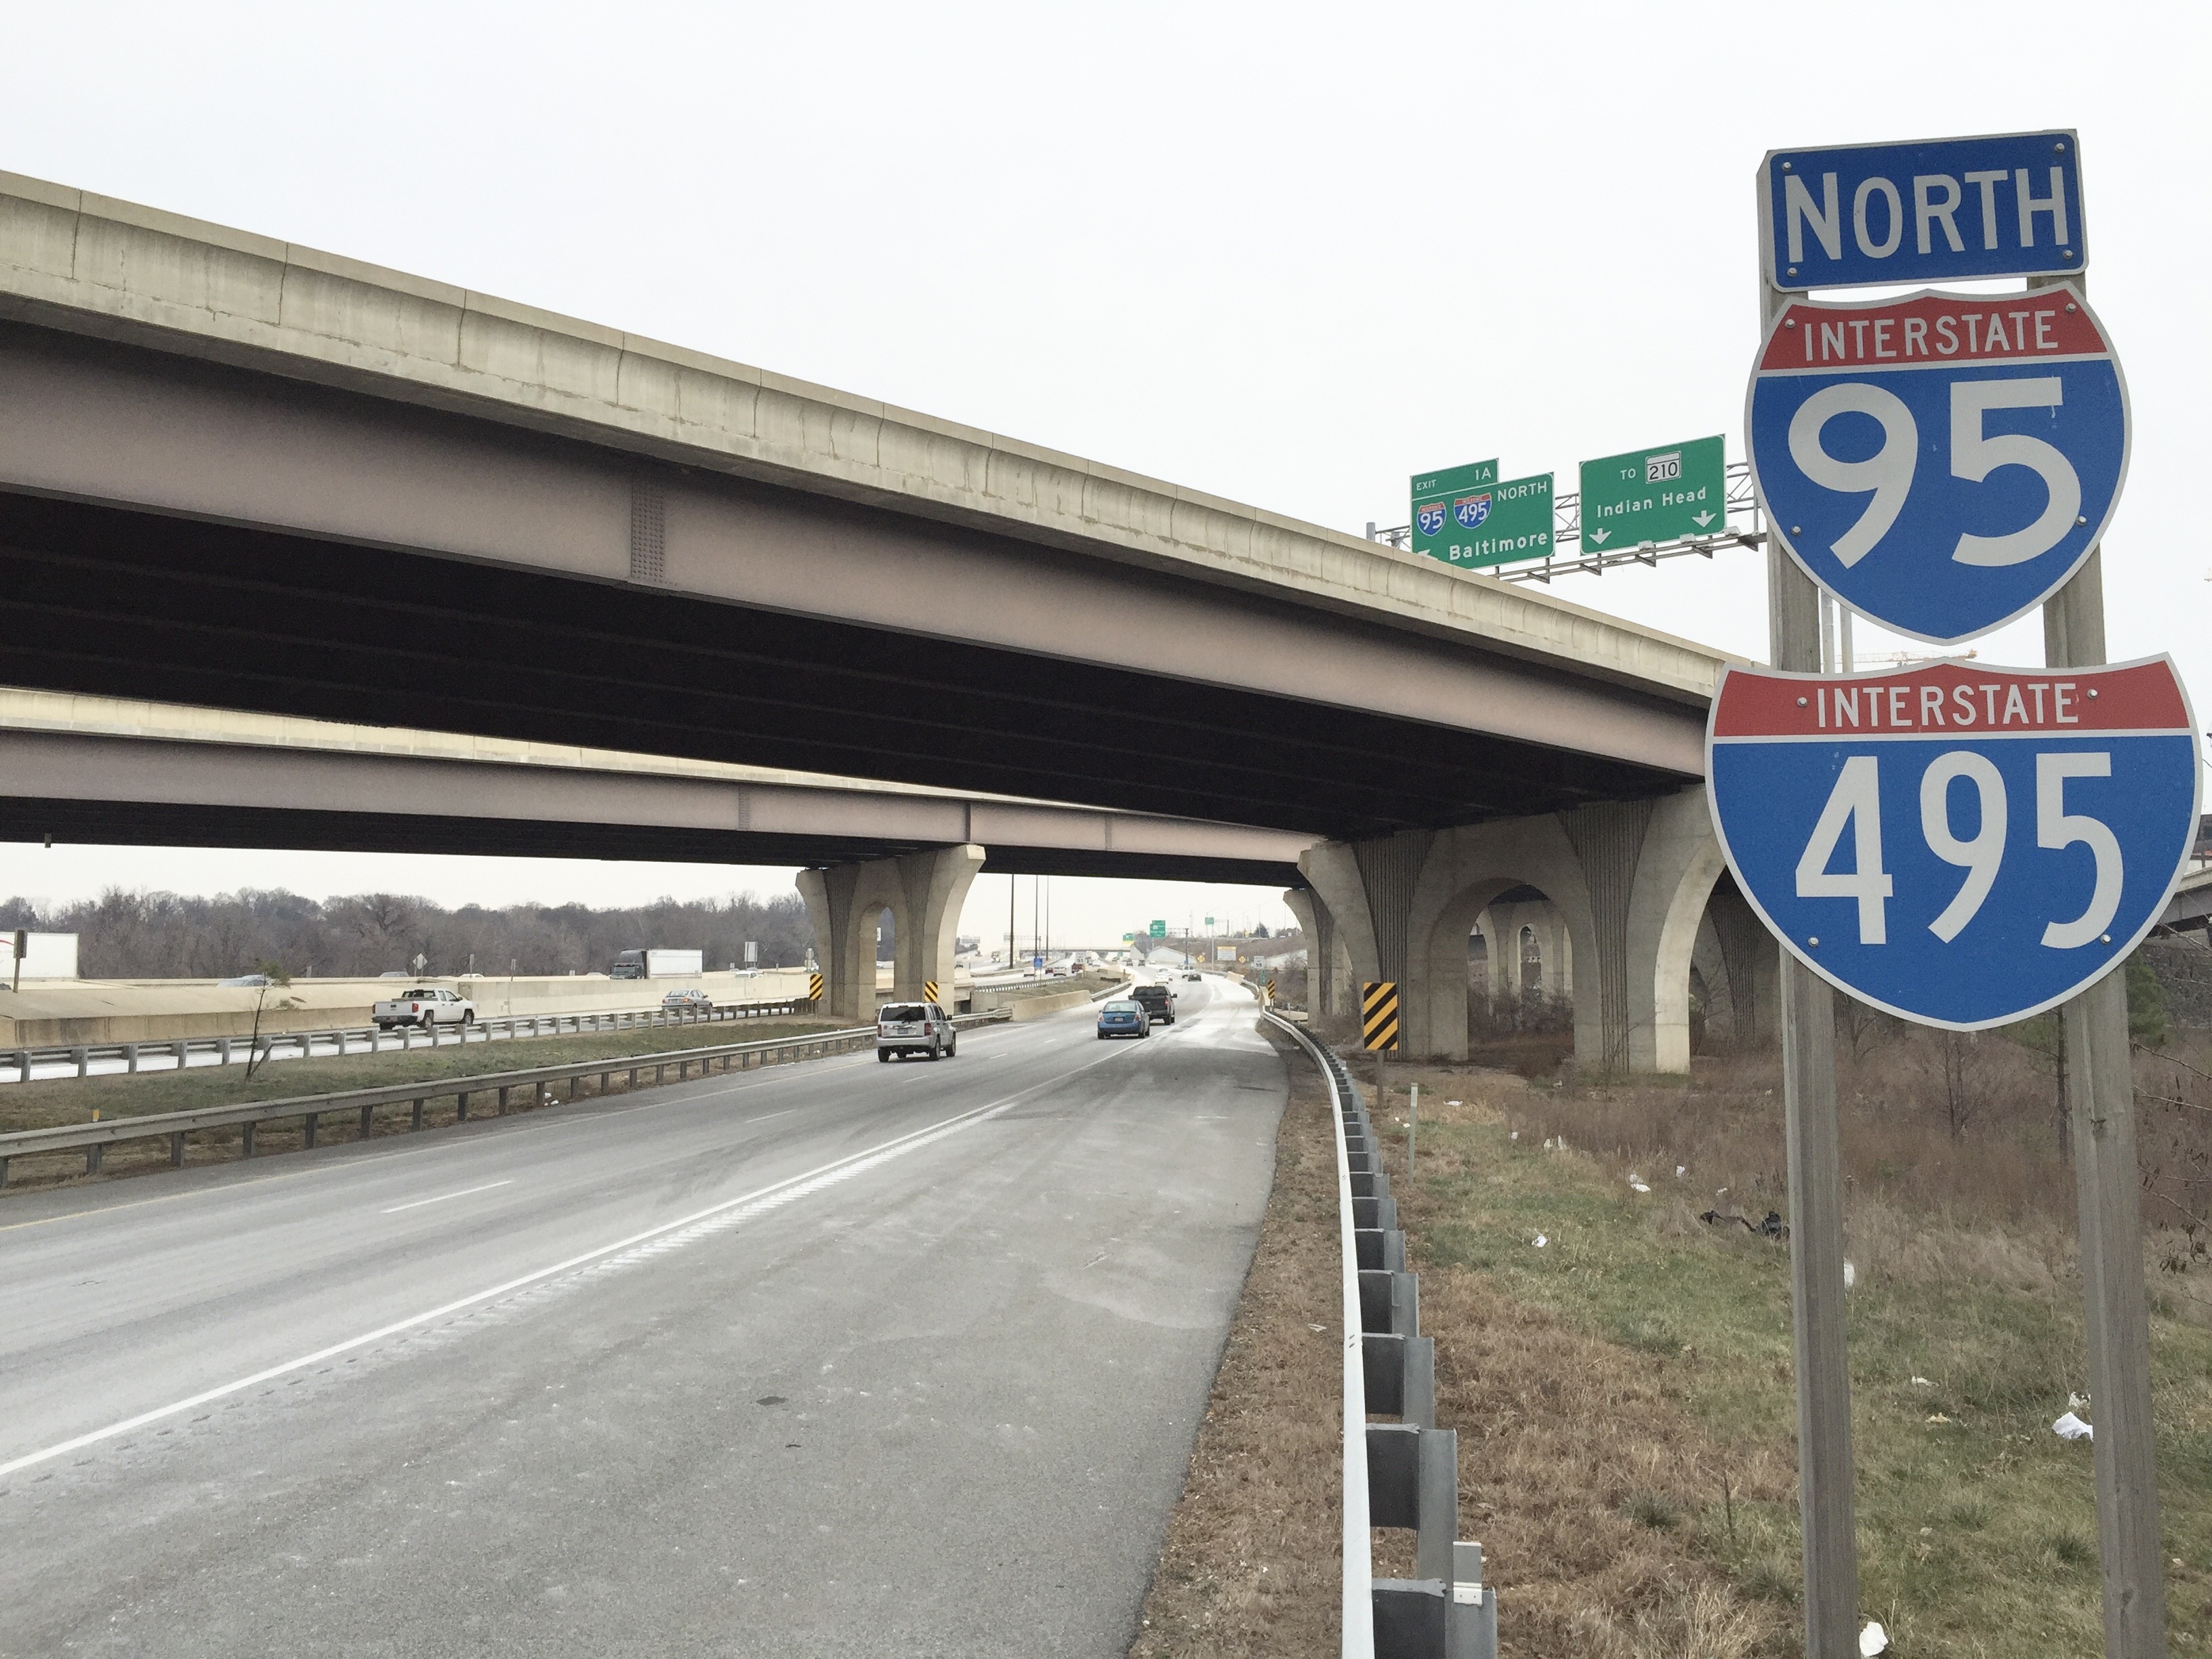 100 Interstate 495 Capital Beltway Wikipedia File 2016 01 22 08 44 11 View South Along The